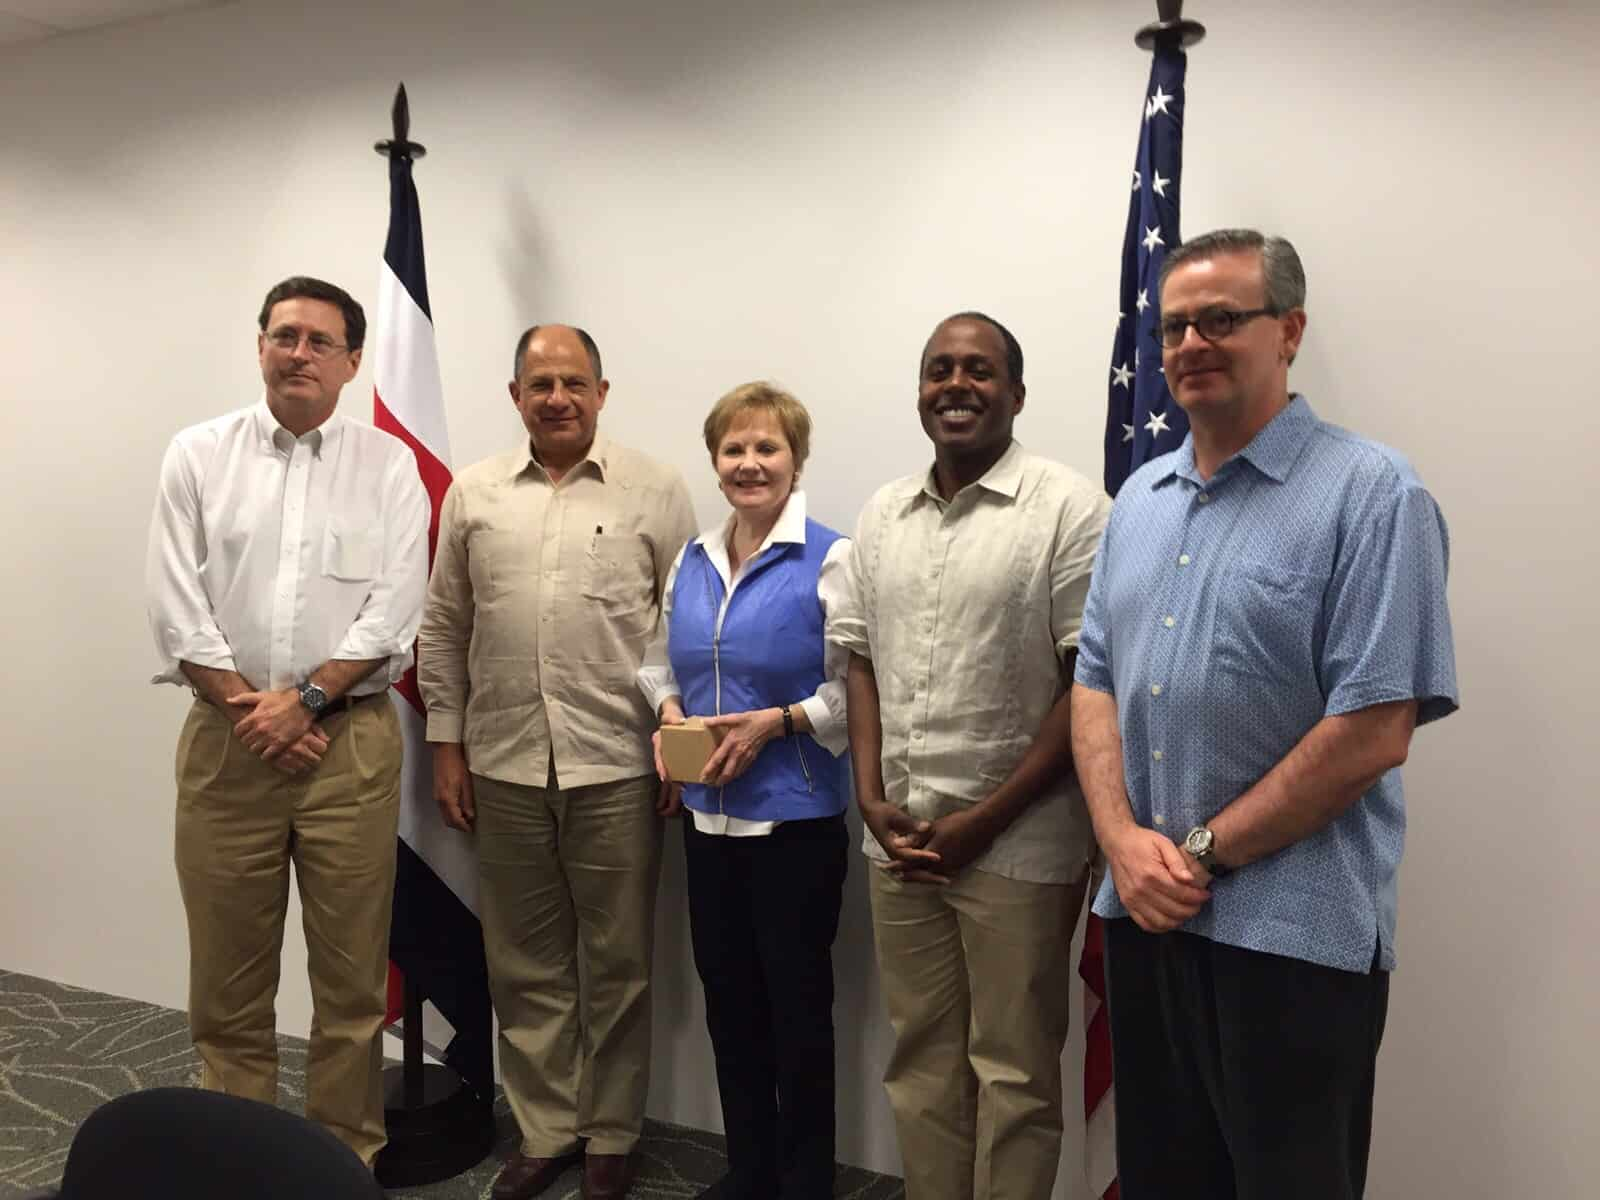 U.S. Representatives from Texas meet with President Solís